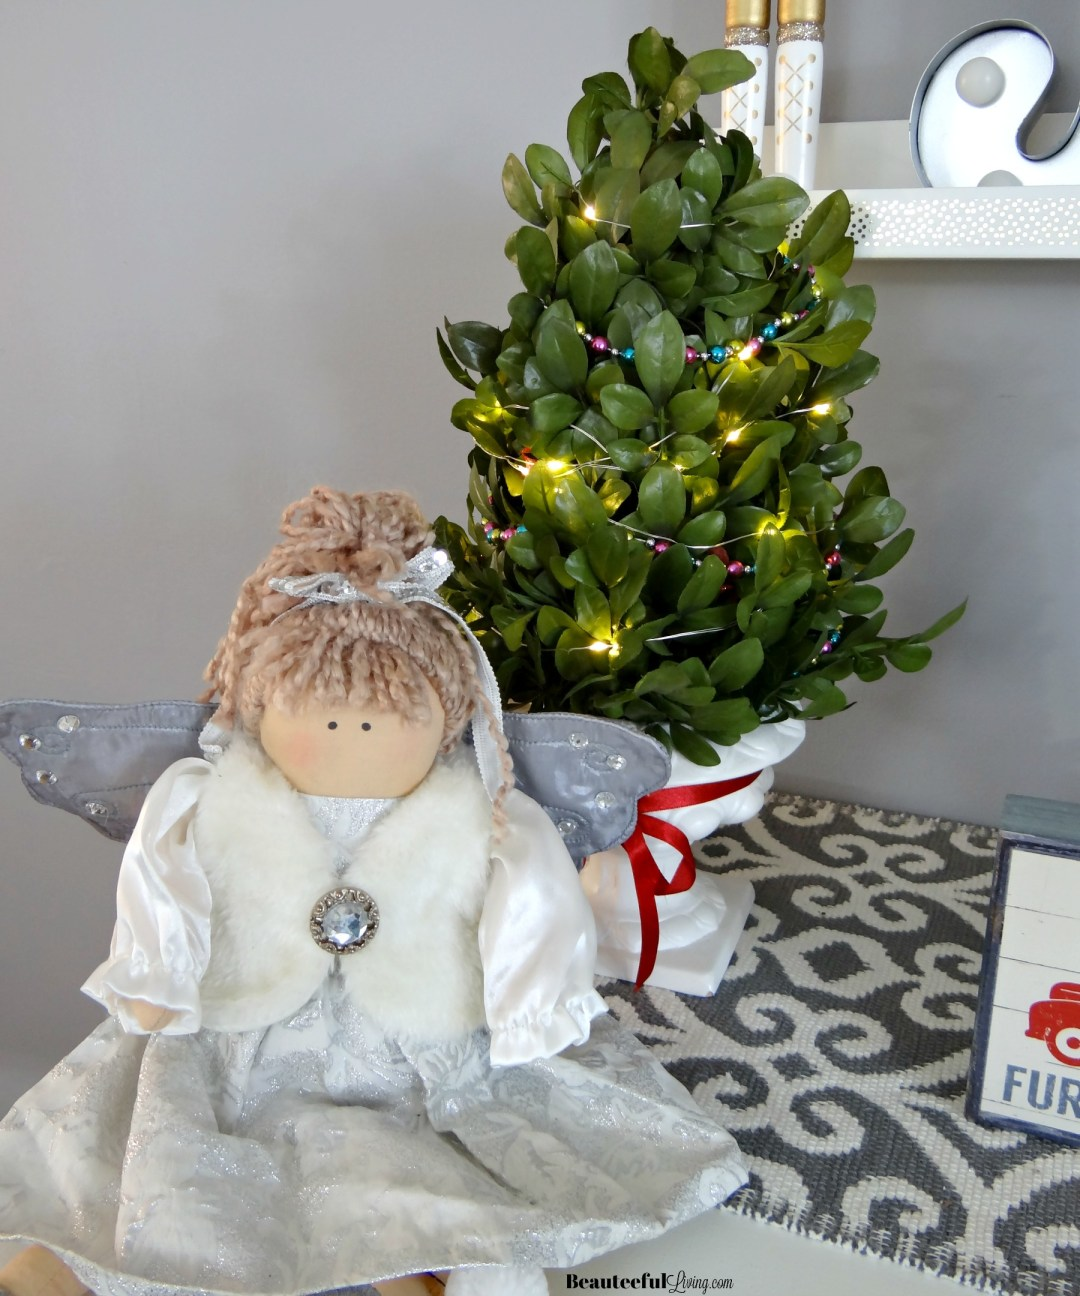 Glam Christmas Console Table Decor - Beauteeful Living